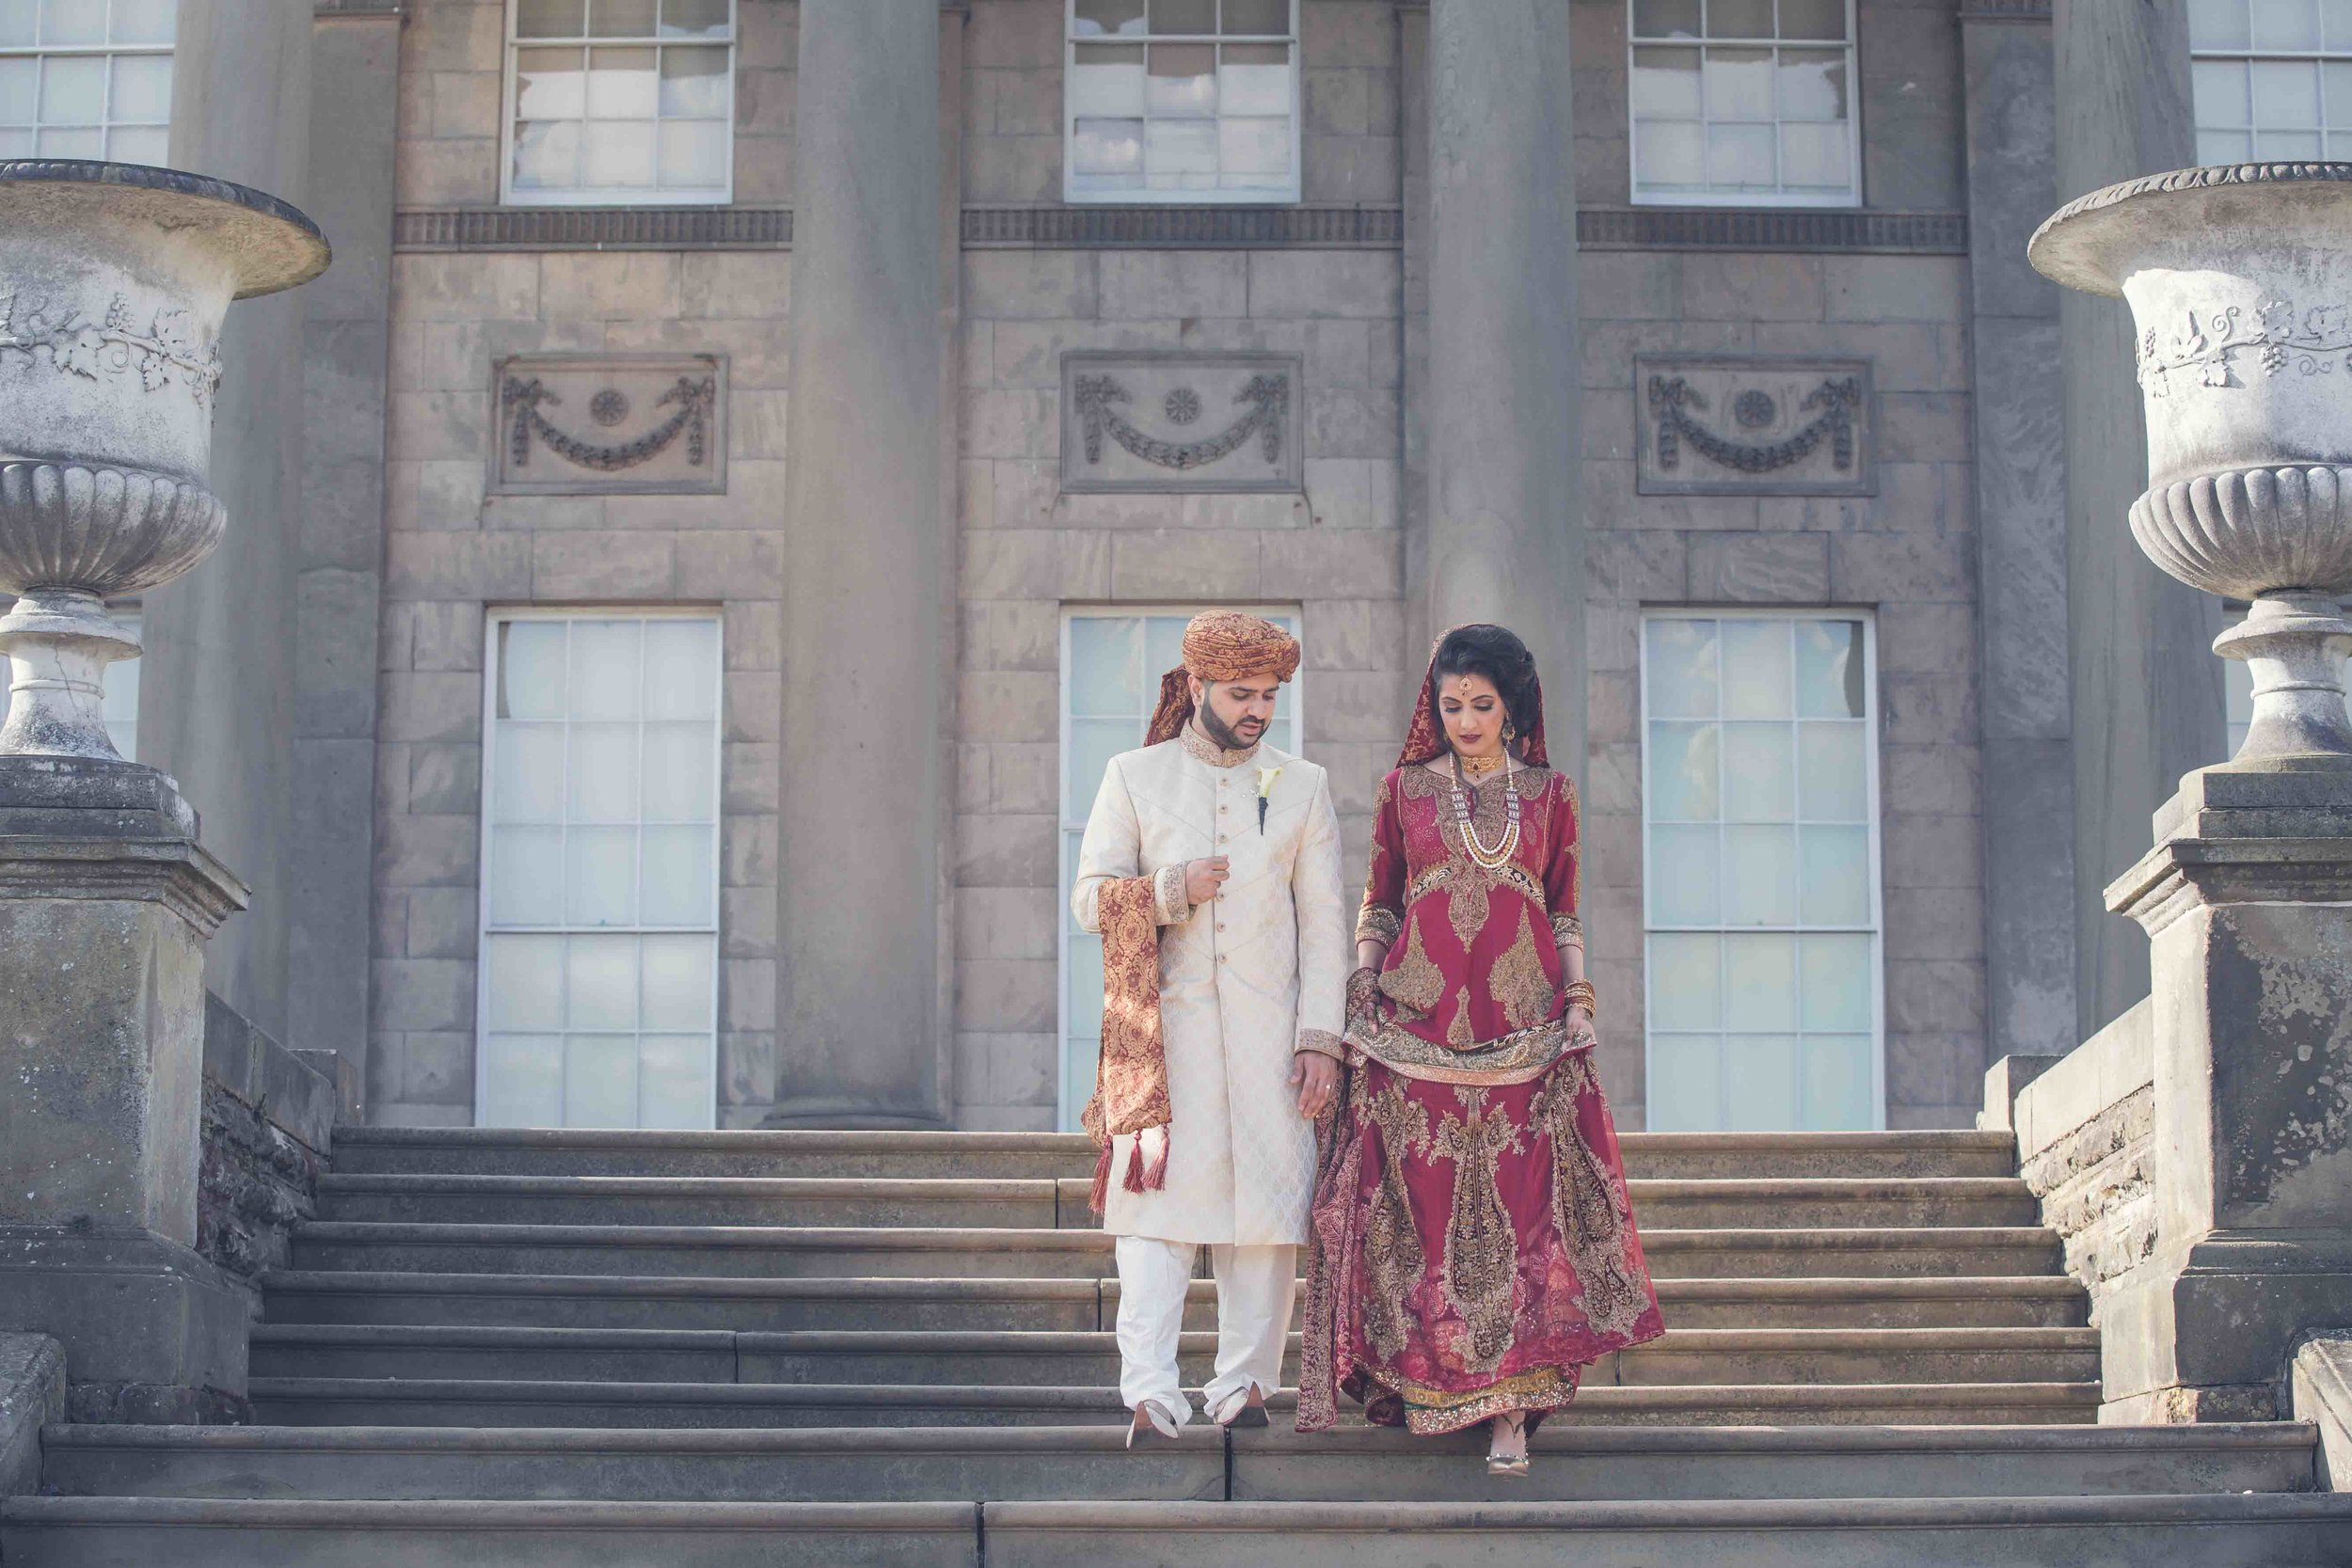 Opu Sultan Photography Asian wedding photography scotland edinburgh glasgow manchester birmingham london-280.jpg